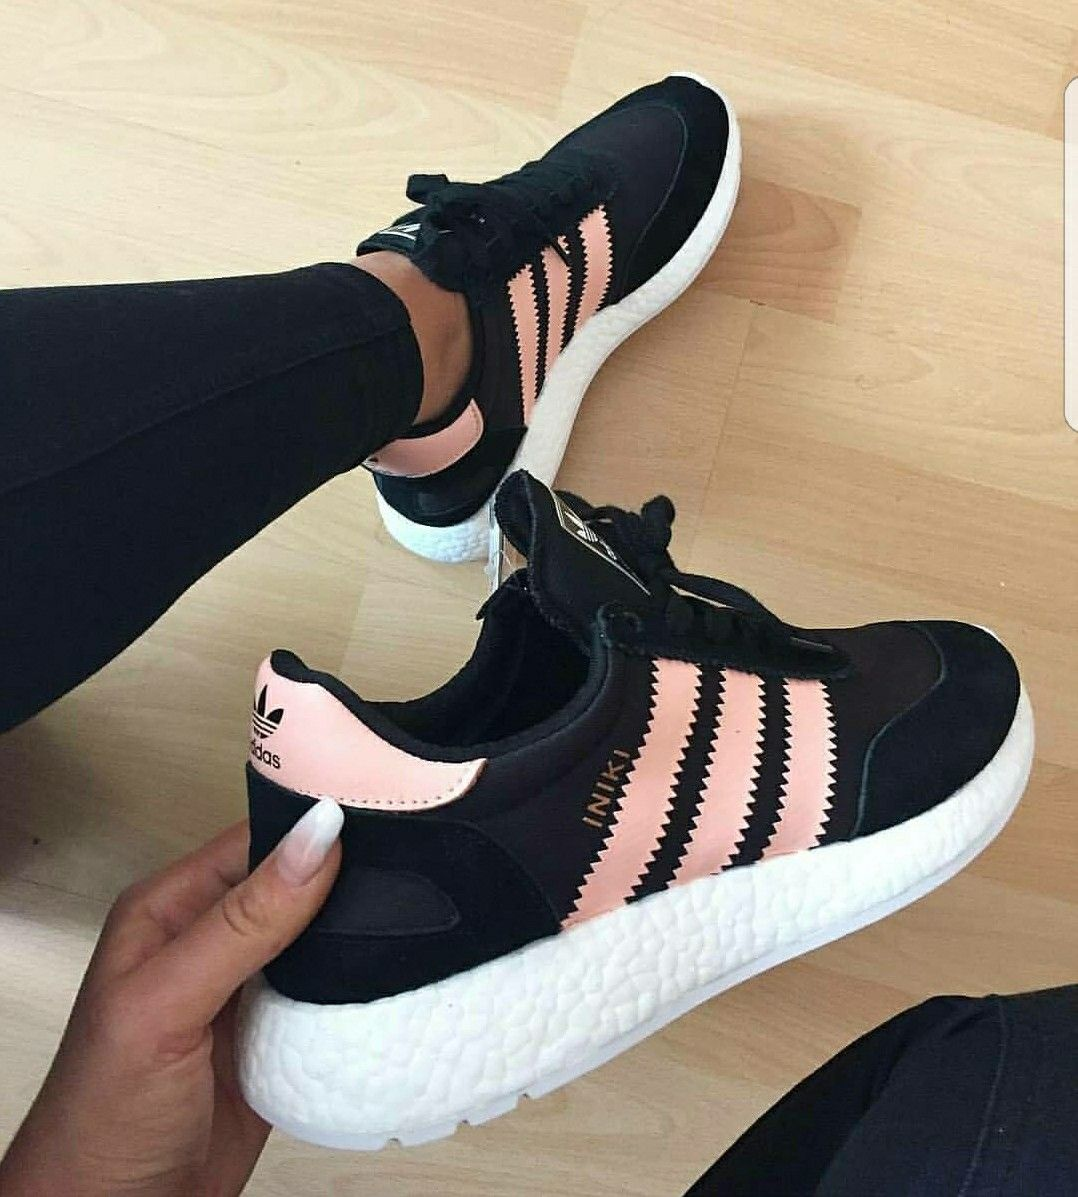 Pin by Maria Jose Madrigal on Outfits in 2019 | Zapatillas